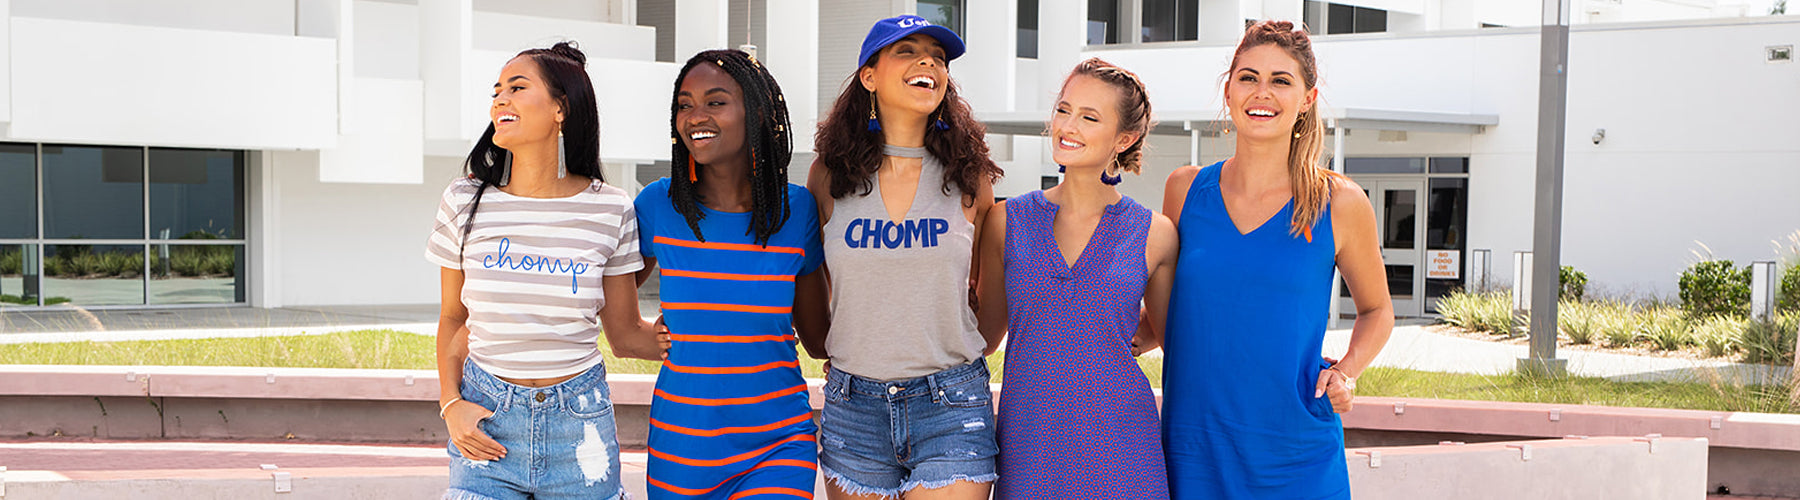 best service 617fb b3ed5 Calling all Gator Fans! You will love our growing selection of University  of Florida Gators Women s apparel! Tired of wearing the same old generic  t-shirt ...